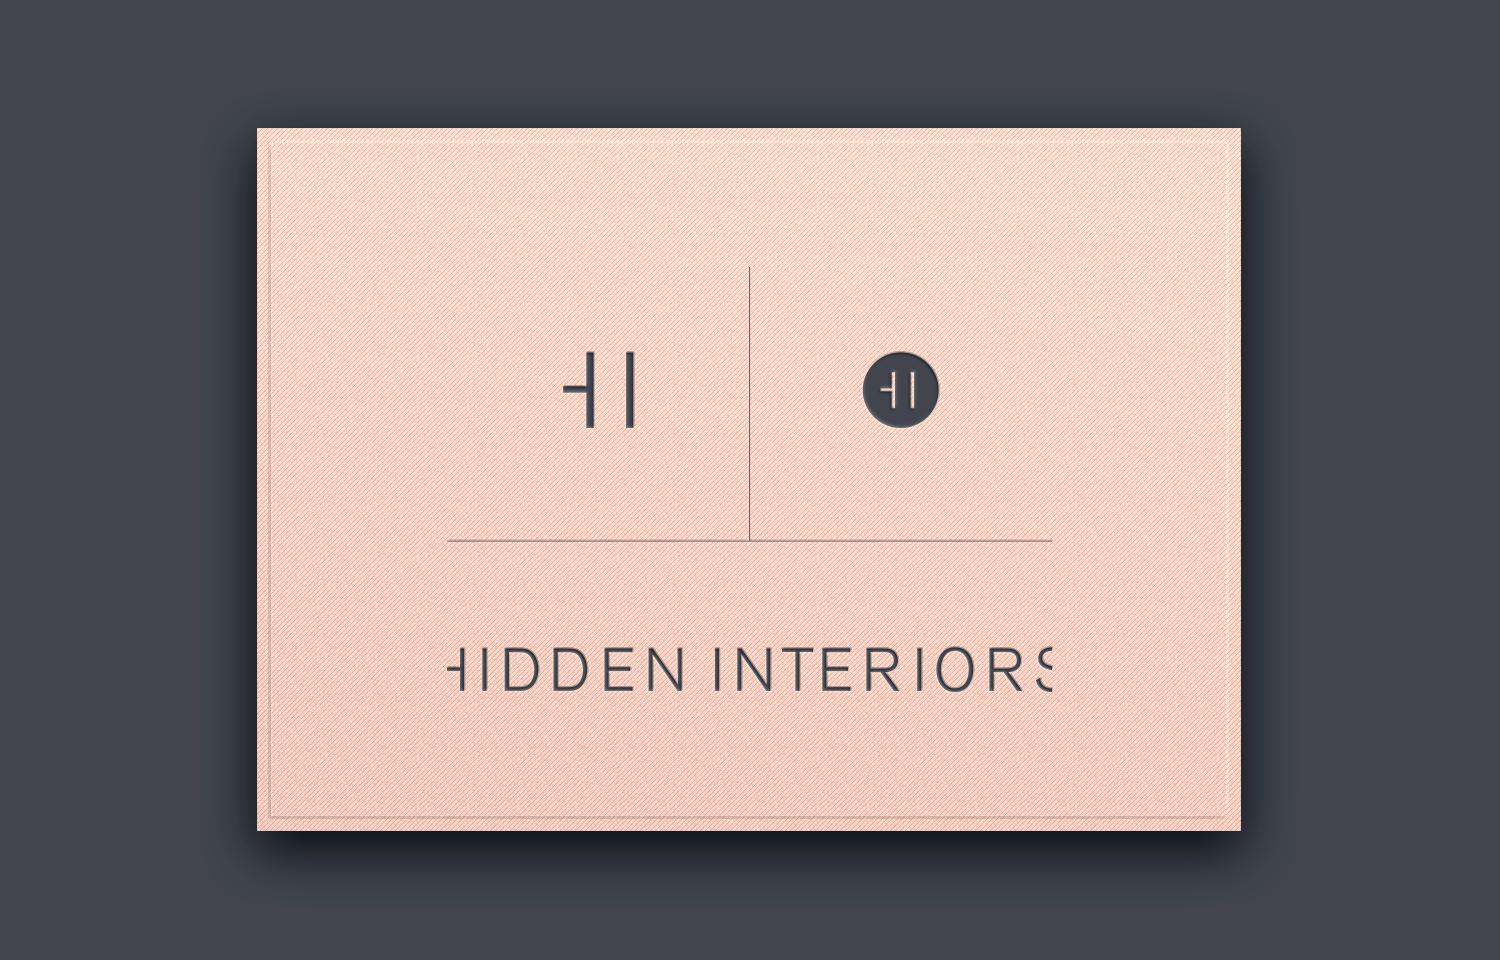 All variations of the Hidden Interiors logo.